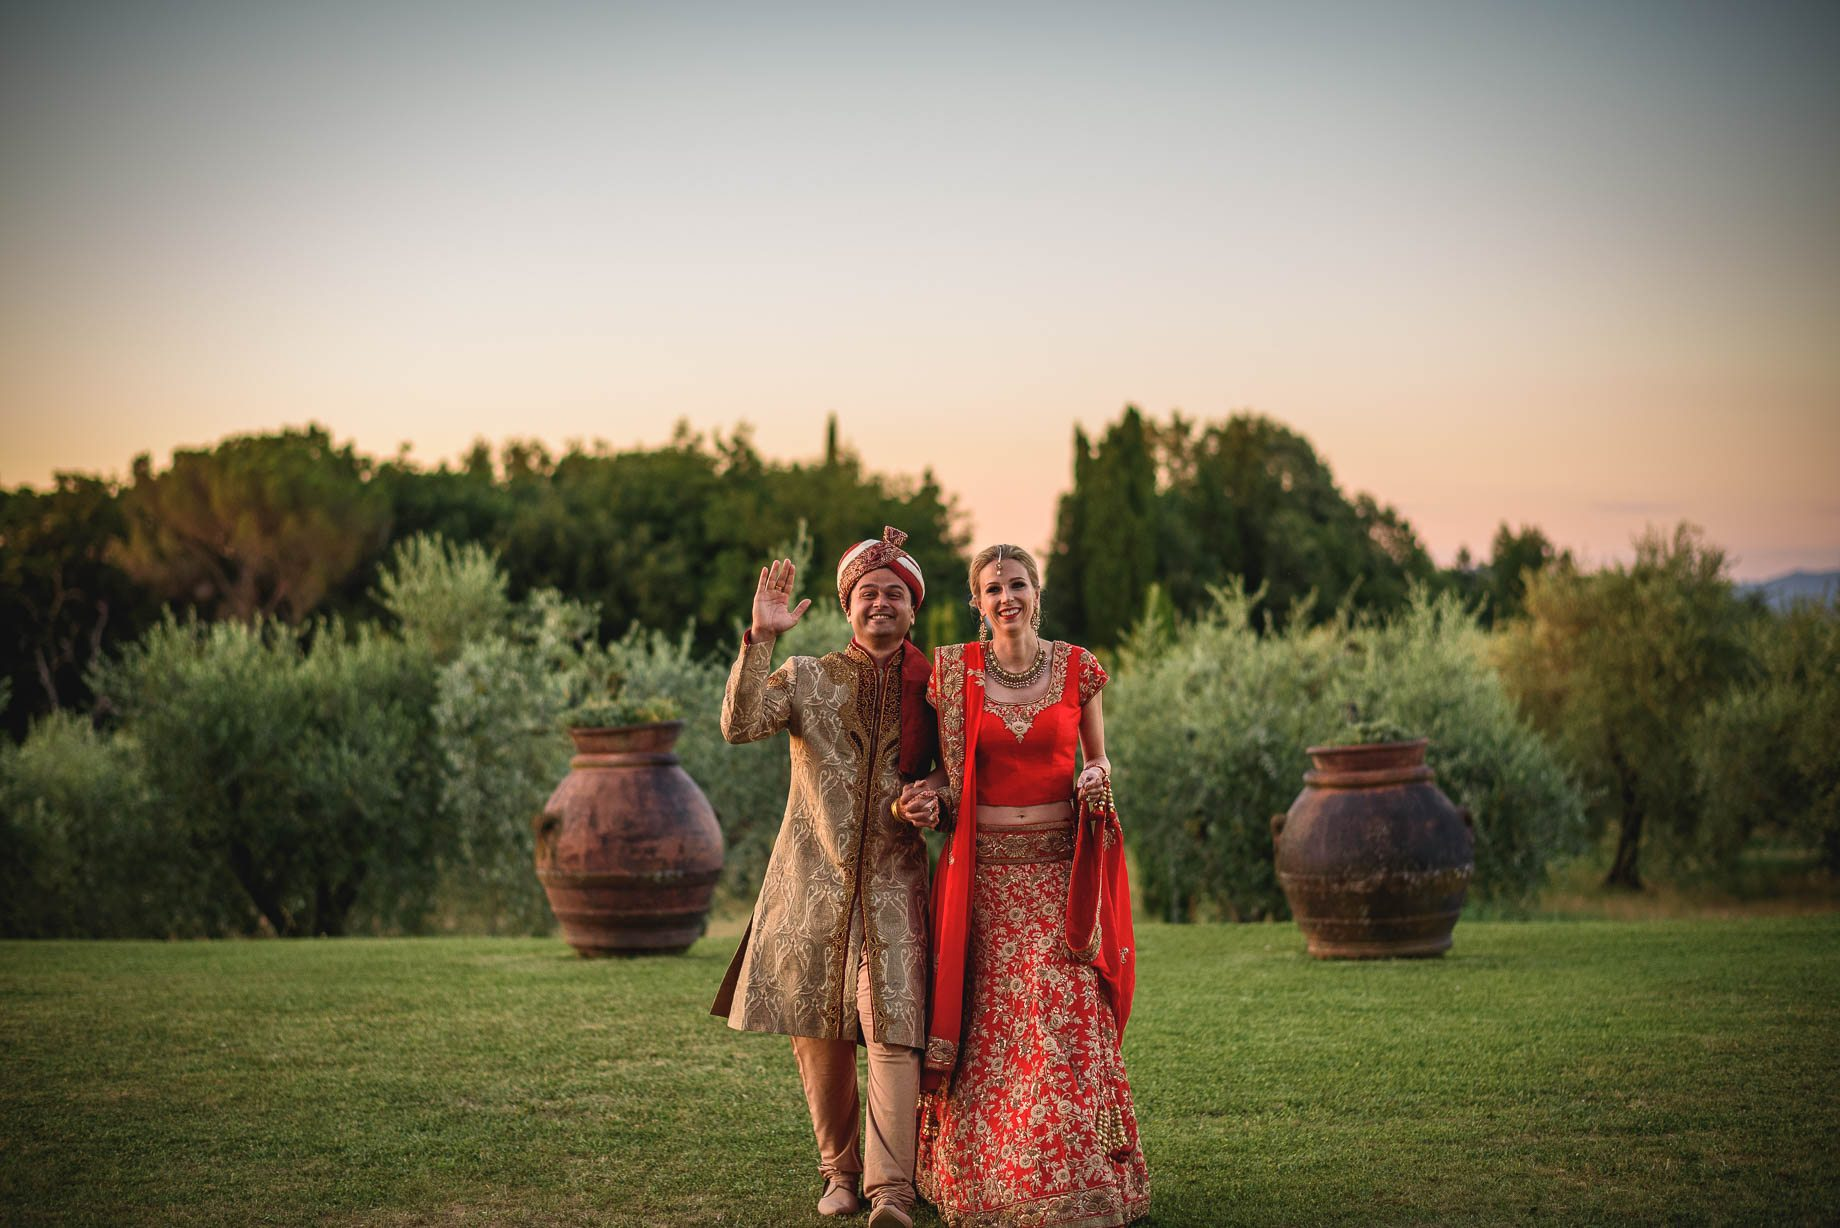 Tuscany wedding photography - Roisin and Moubin - Guy Collier Photography (167 of 194)